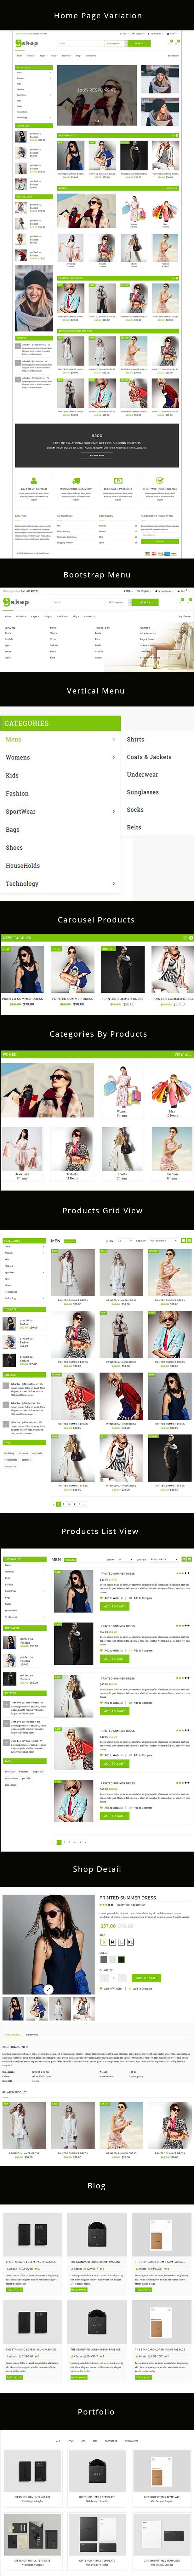 GiftShop Bootstrap HTML5 eCommerce Template - 1